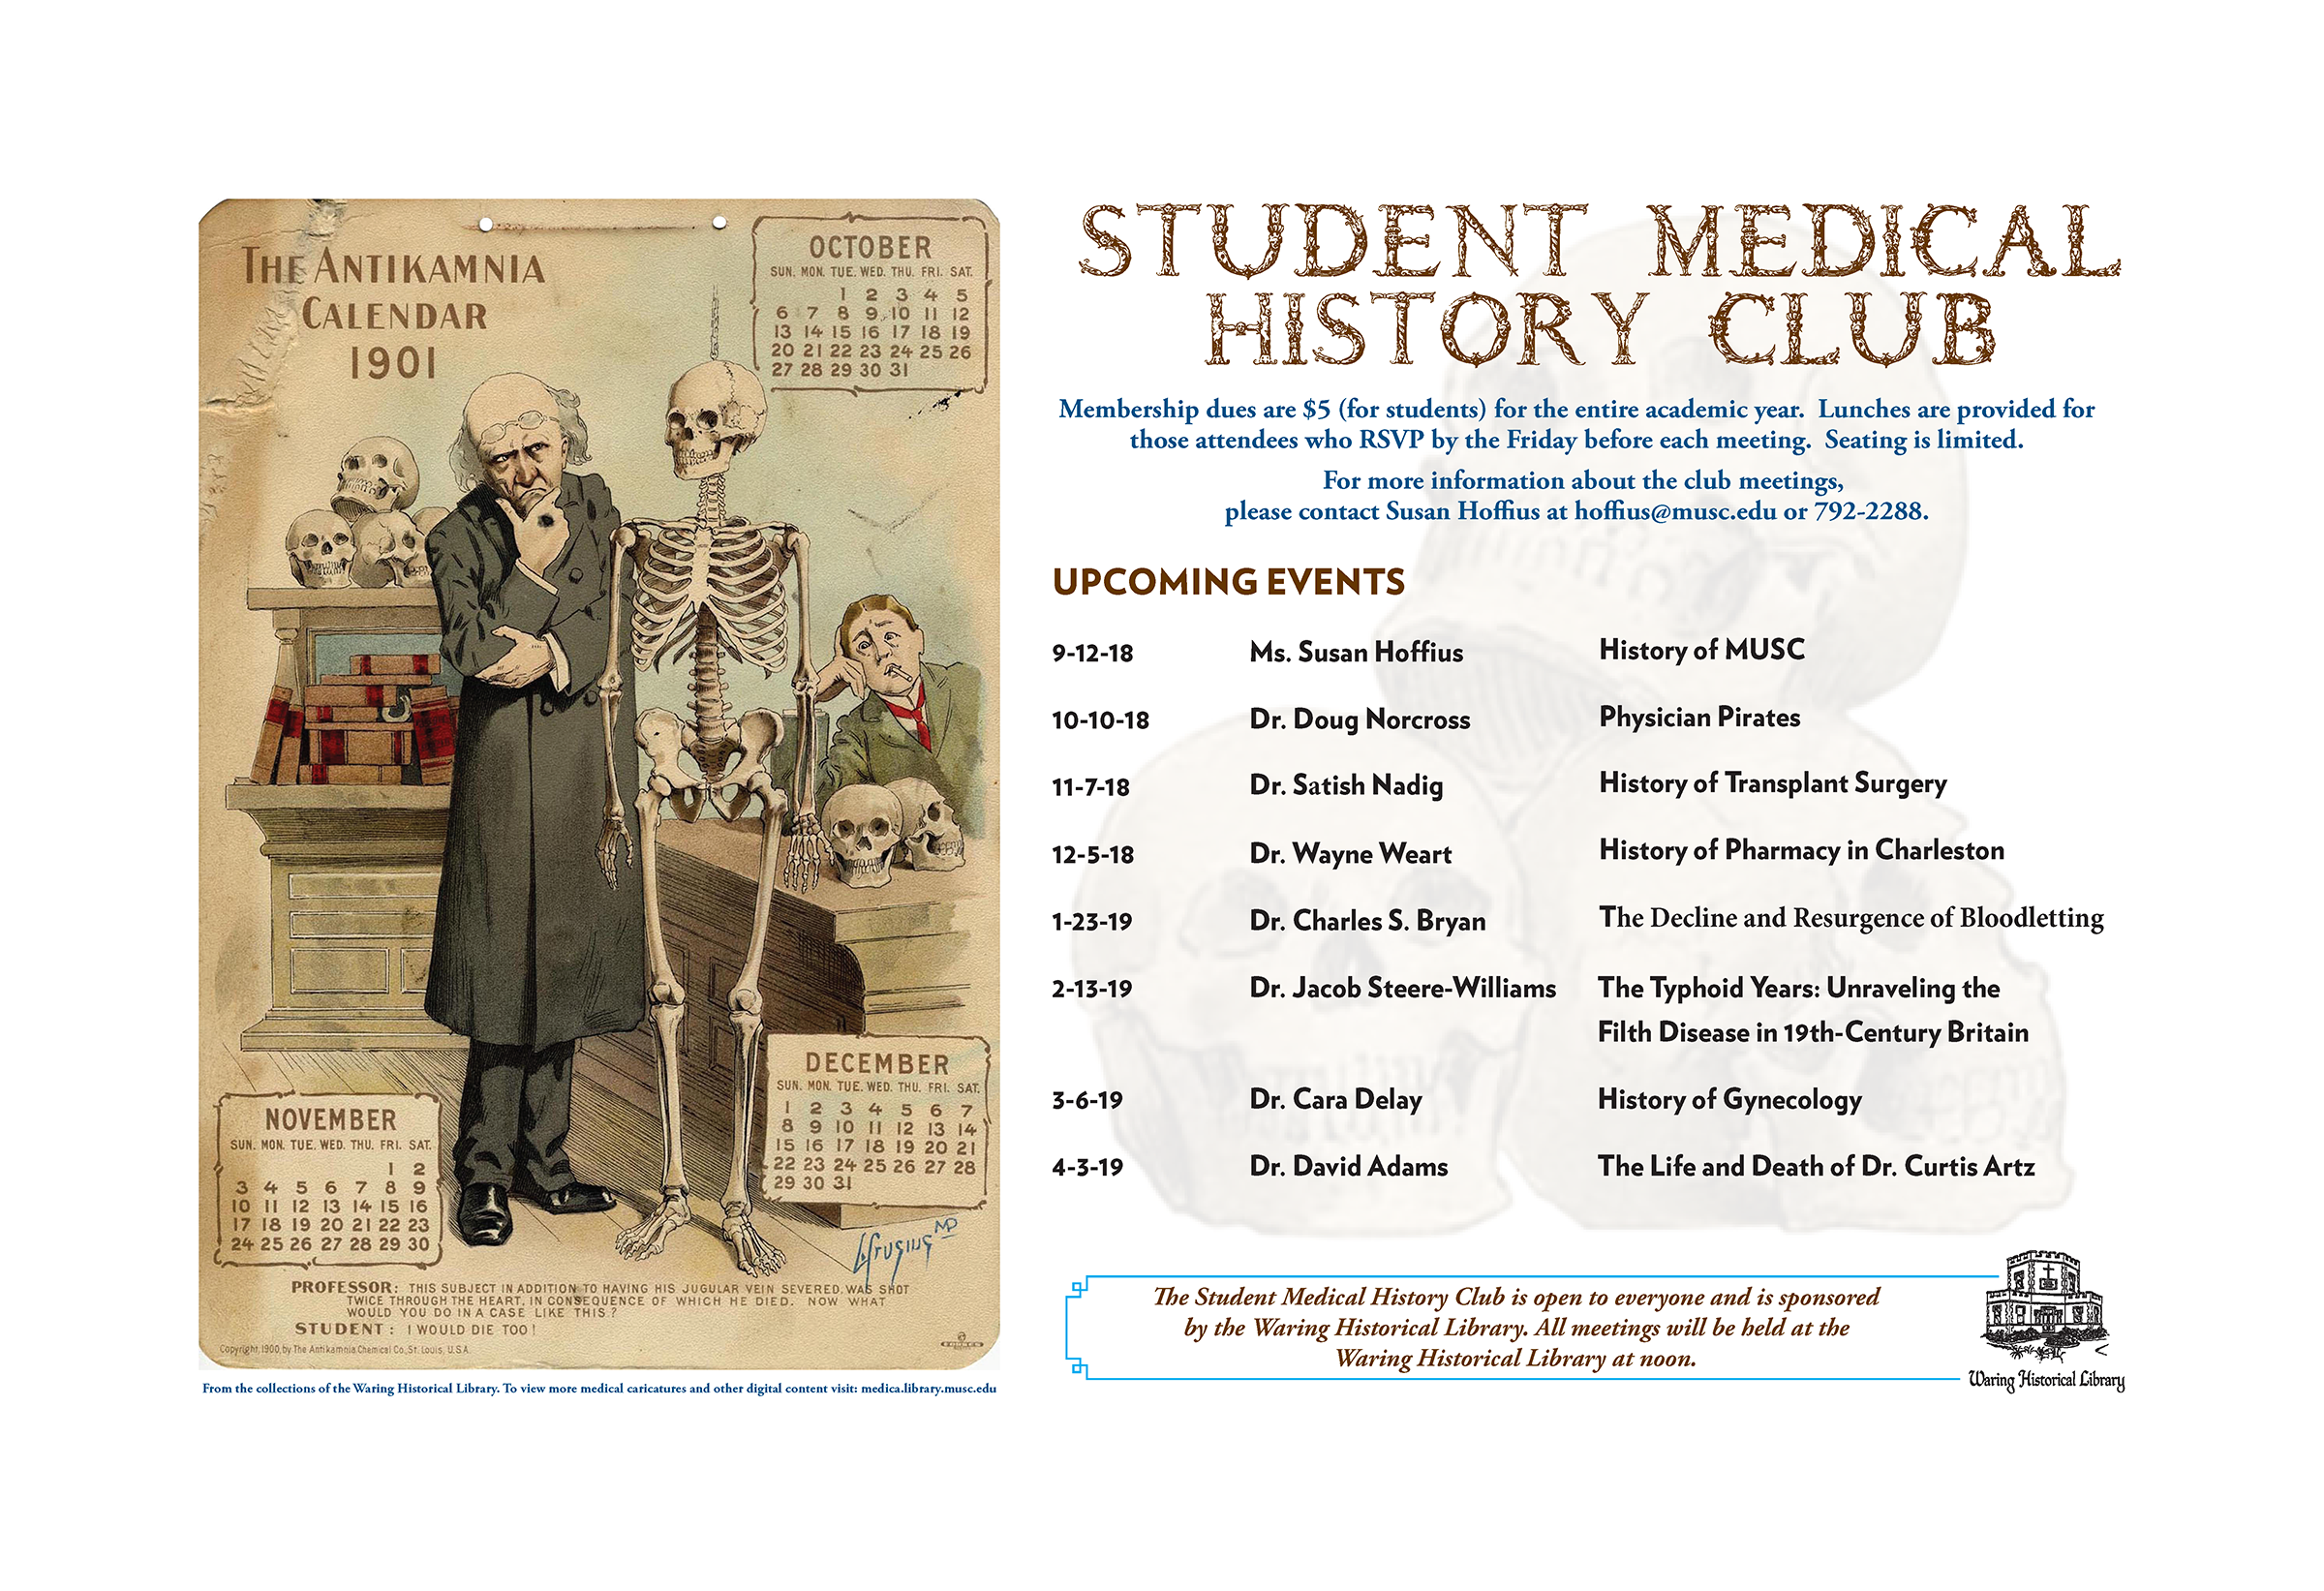 2018/2019 Student Medical History Club Lunch Lecture Series Schedule